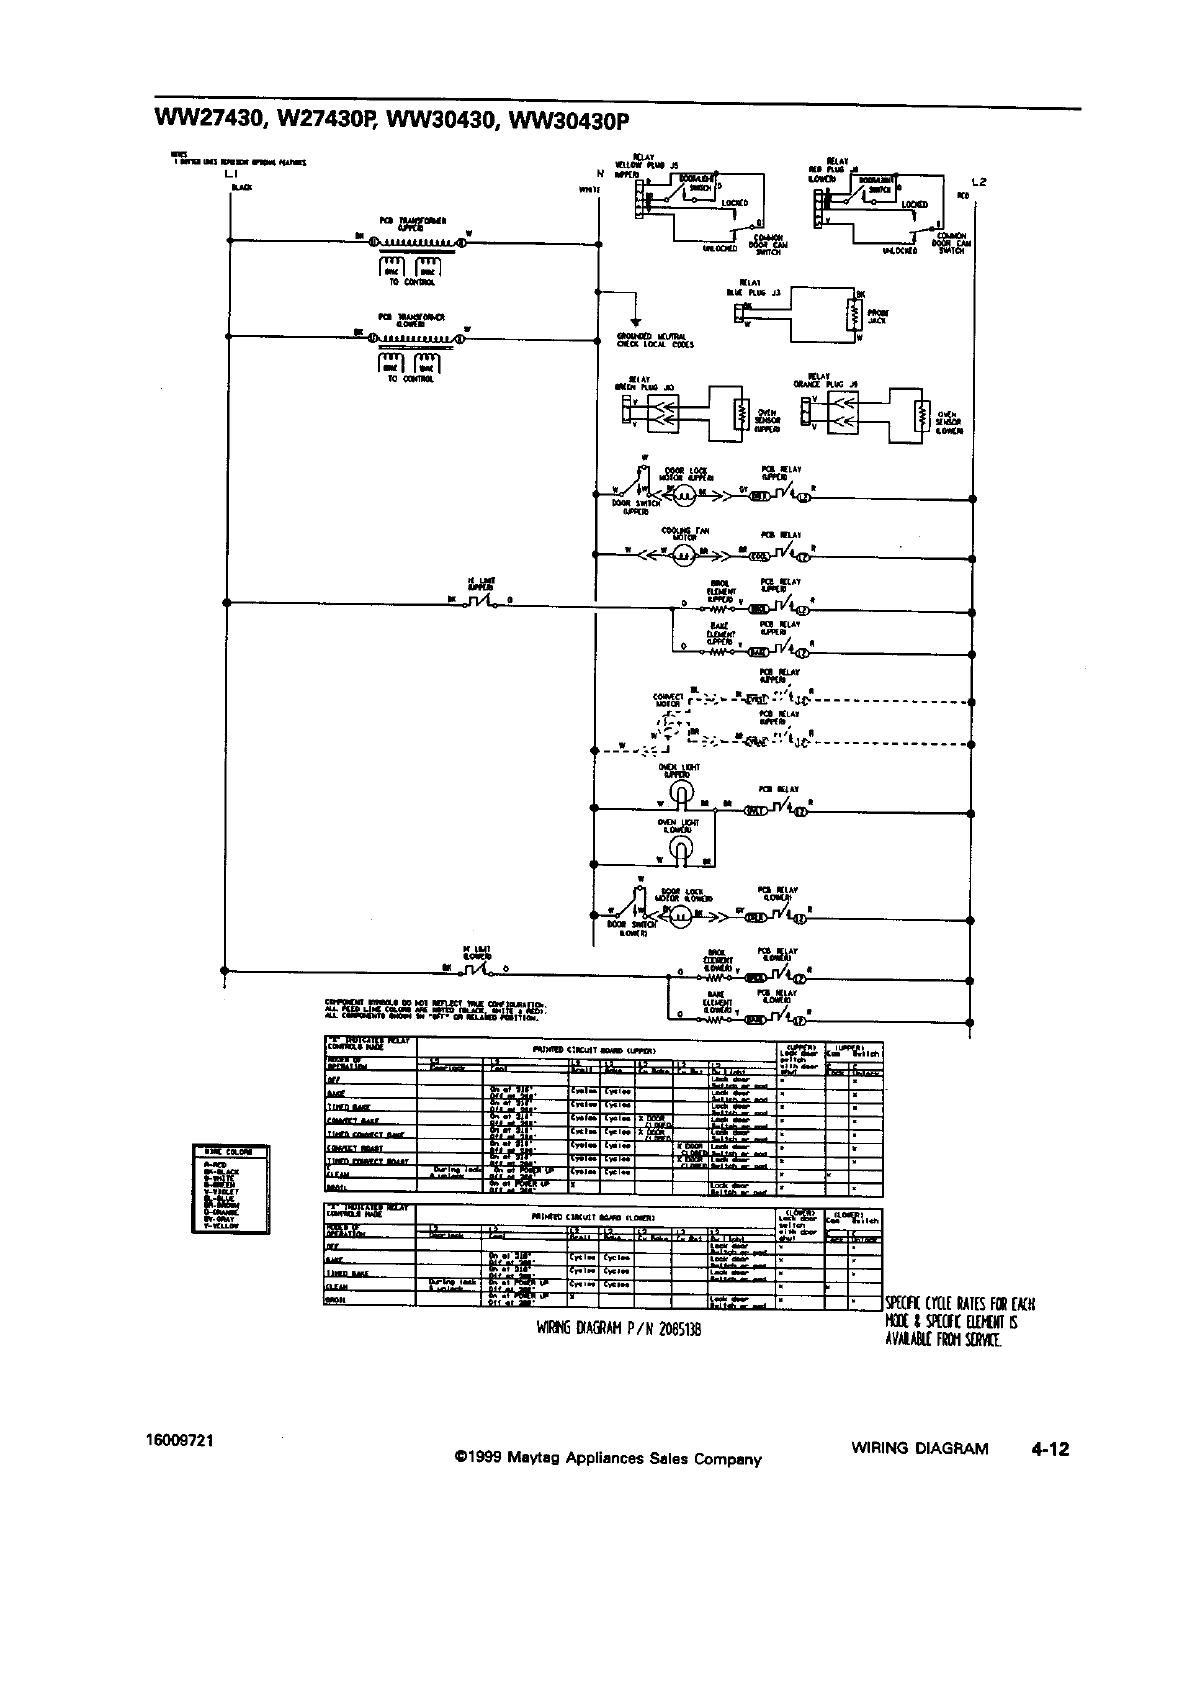 52b2f415 78fa 4259 88c0 be210120d02a bg2c page 44 of jenn air oven jjw8527 user guide manualsonline com Basic Electrical Wiring Diagrams at edmiracle.co